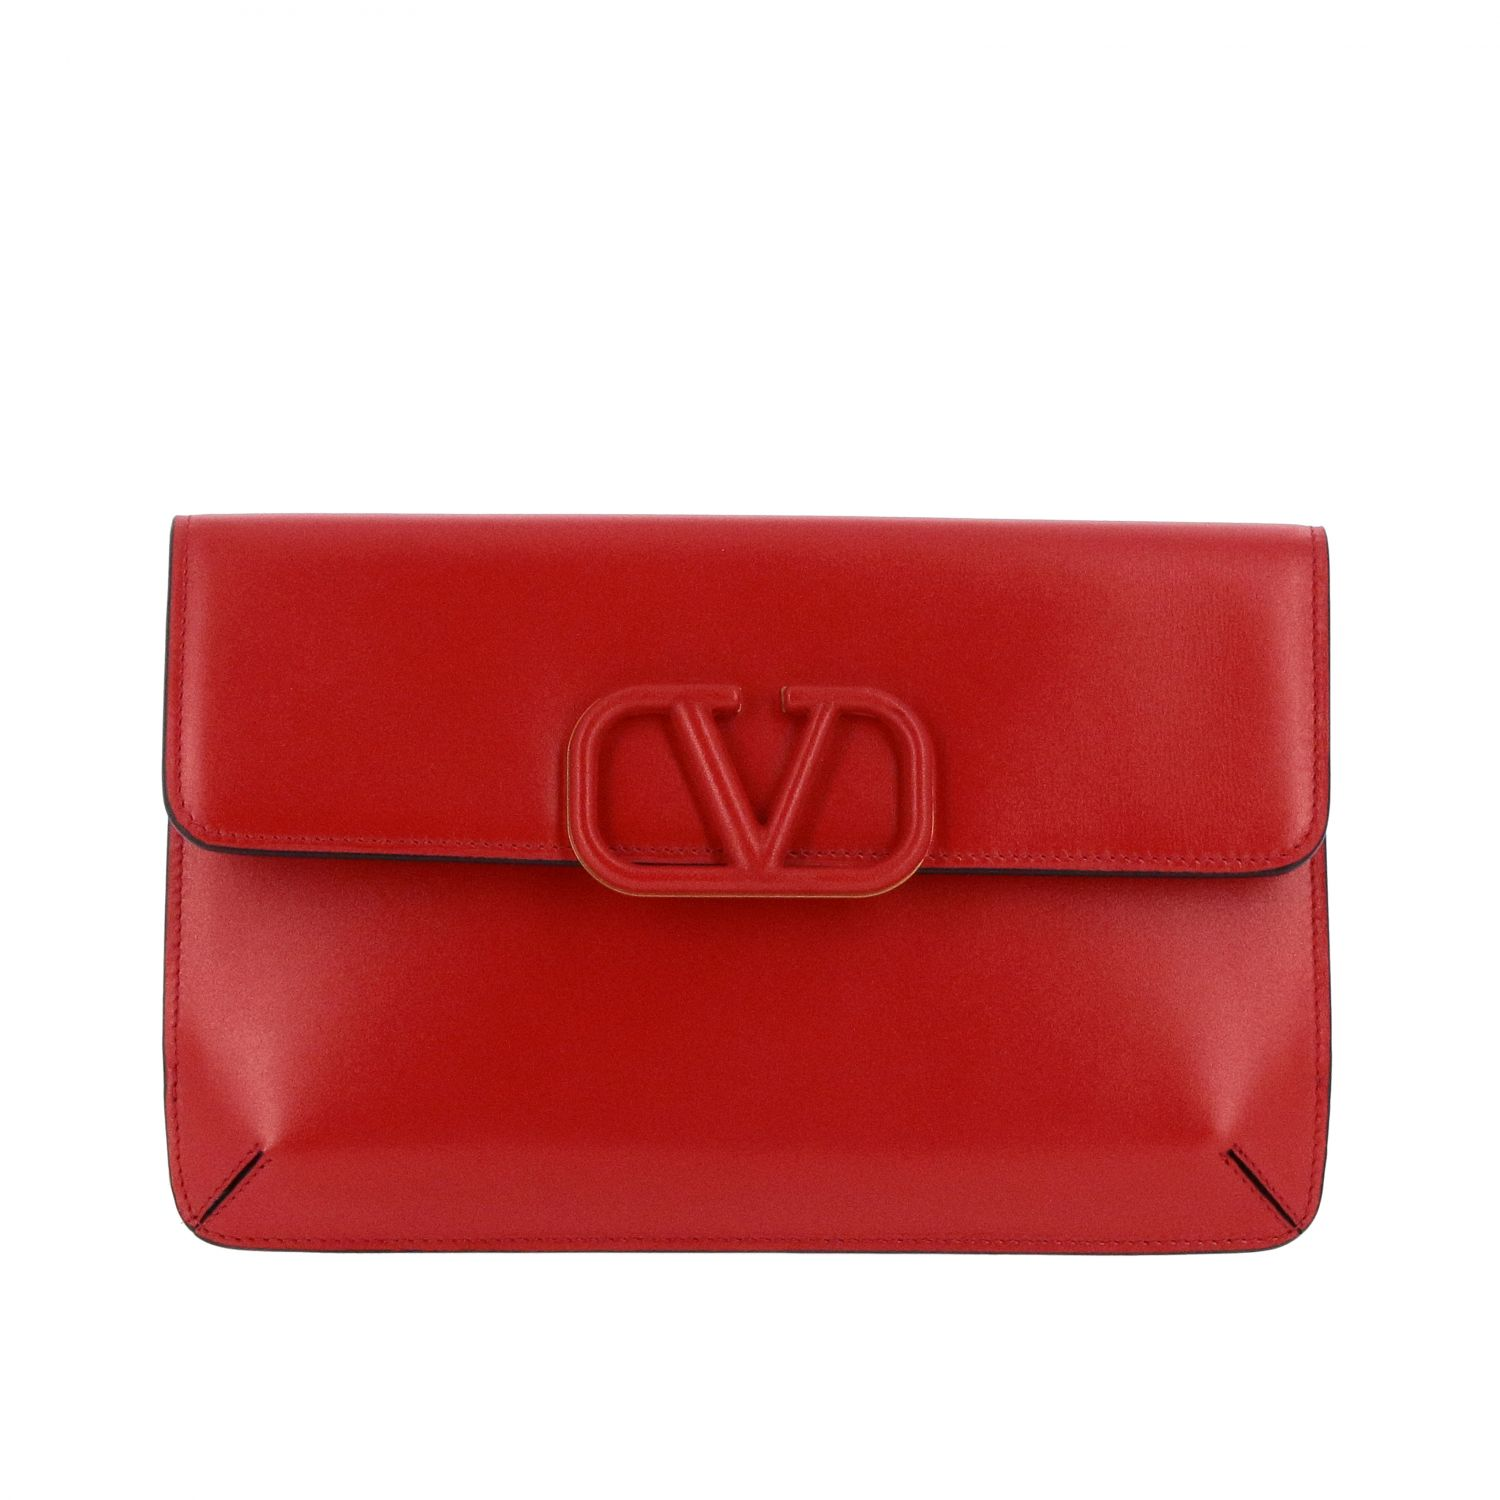 Clutch Valentino Garavani: Mini bag women Valentino Garavani red 1